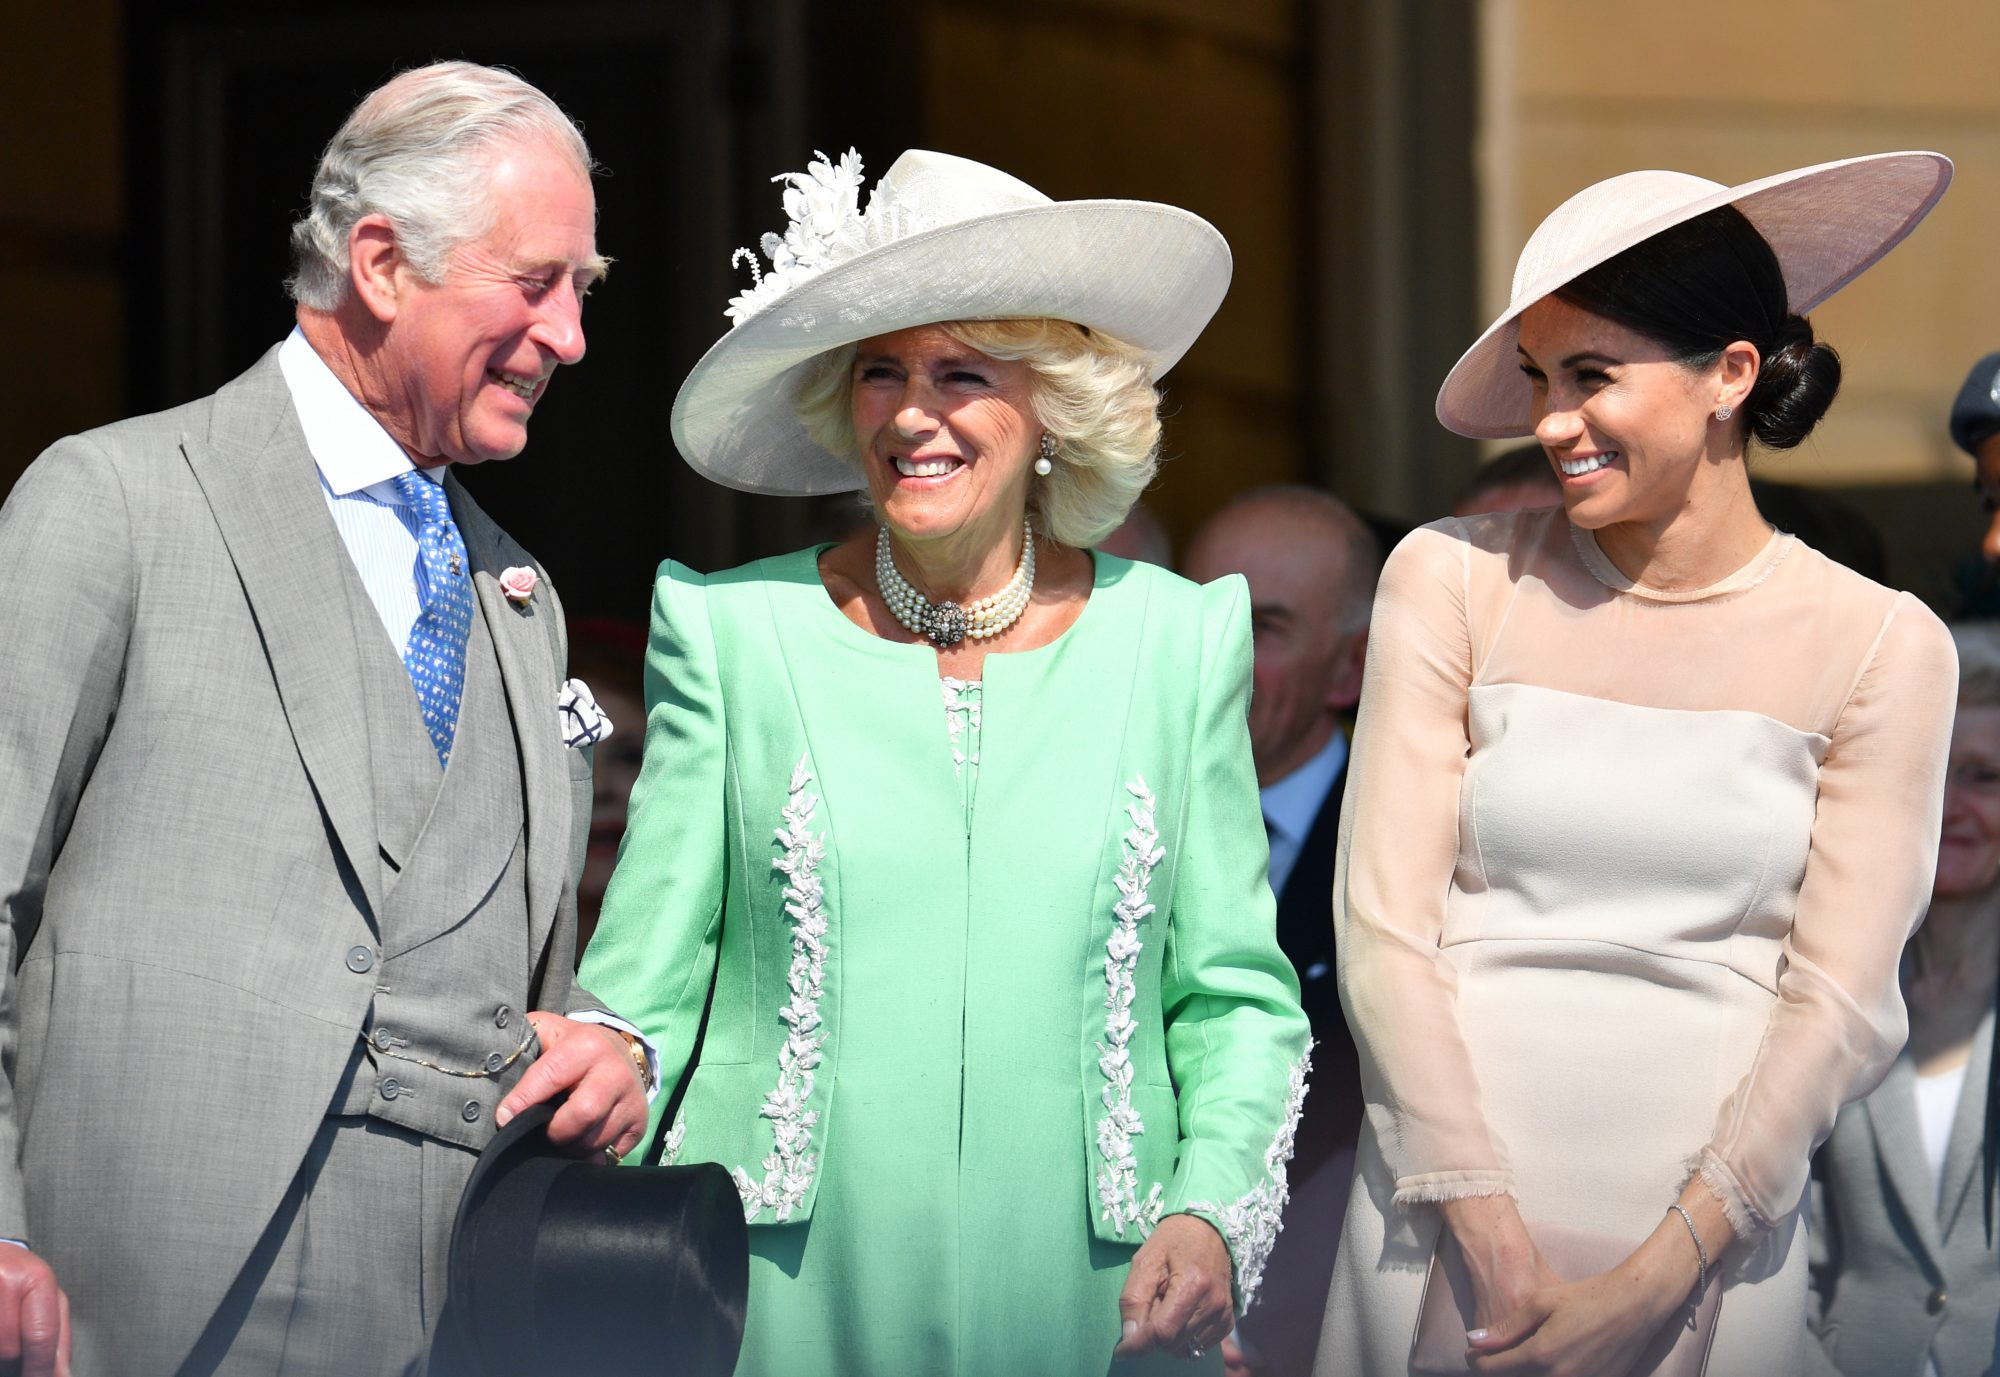 The Prince of Wales' 70th Birthday Patronage Celebration, Buckingham Palace, London, UK - 22 May 2018